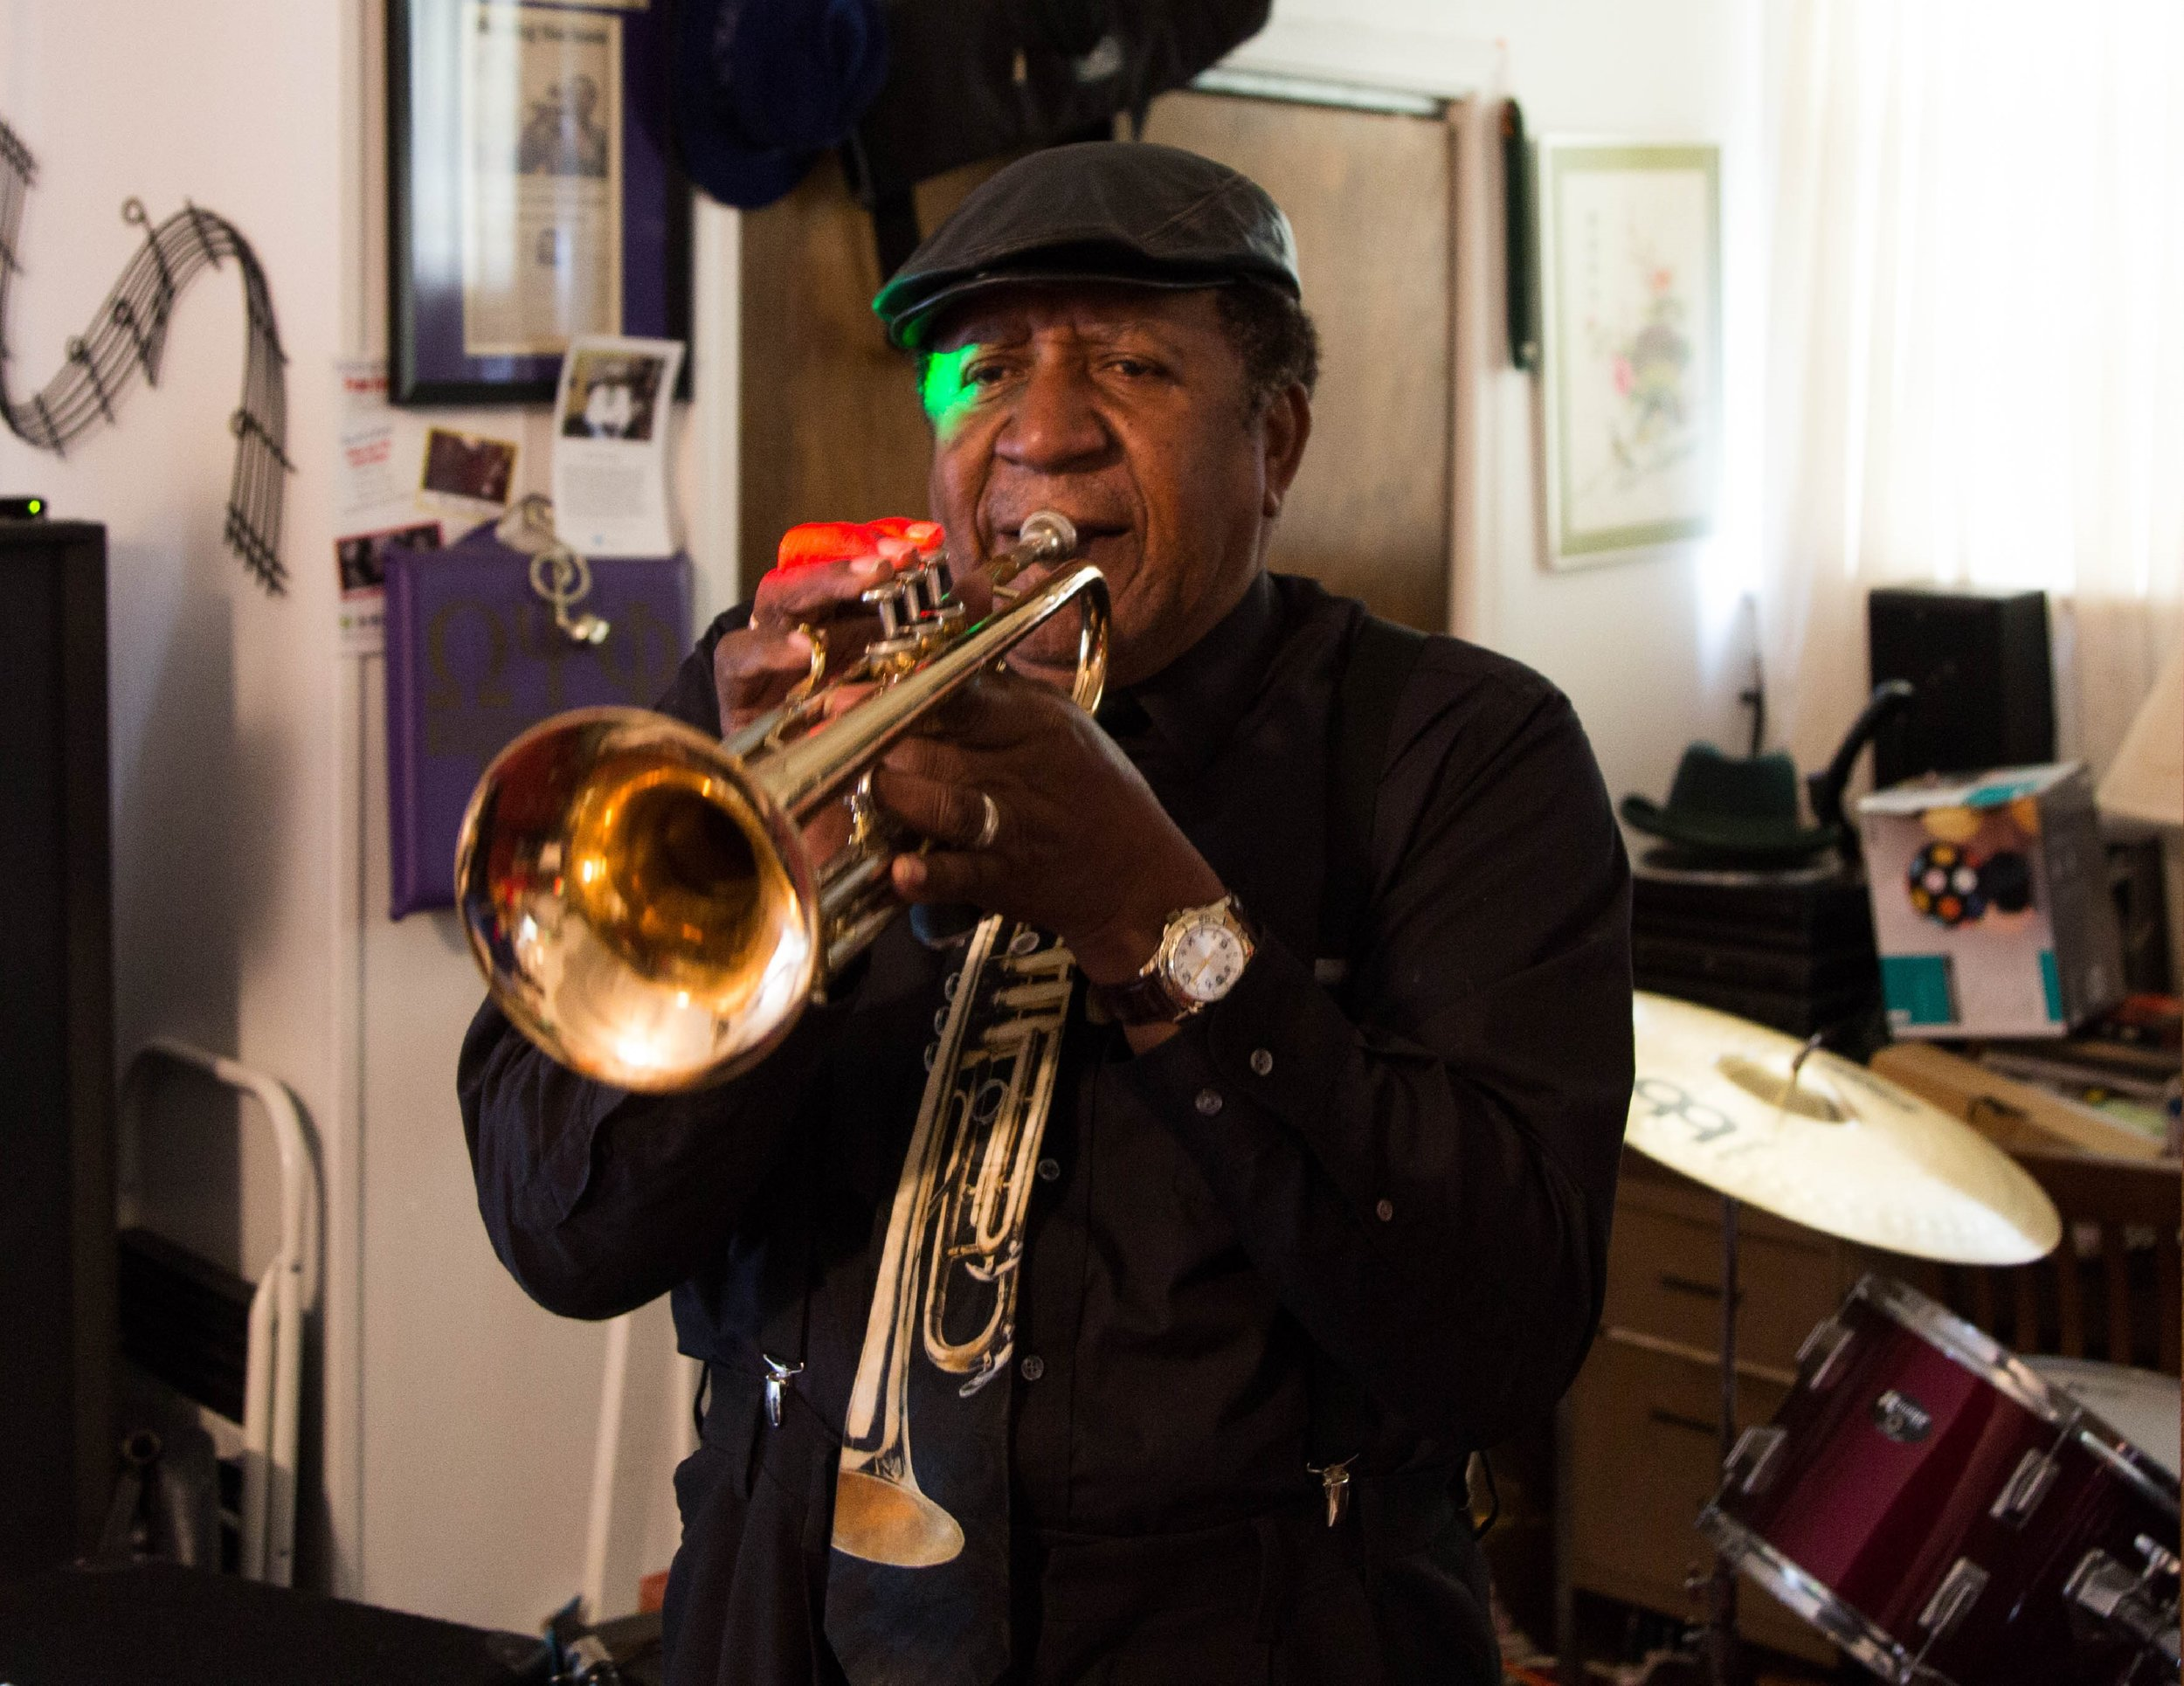 Man in all black and hat playing trumpet